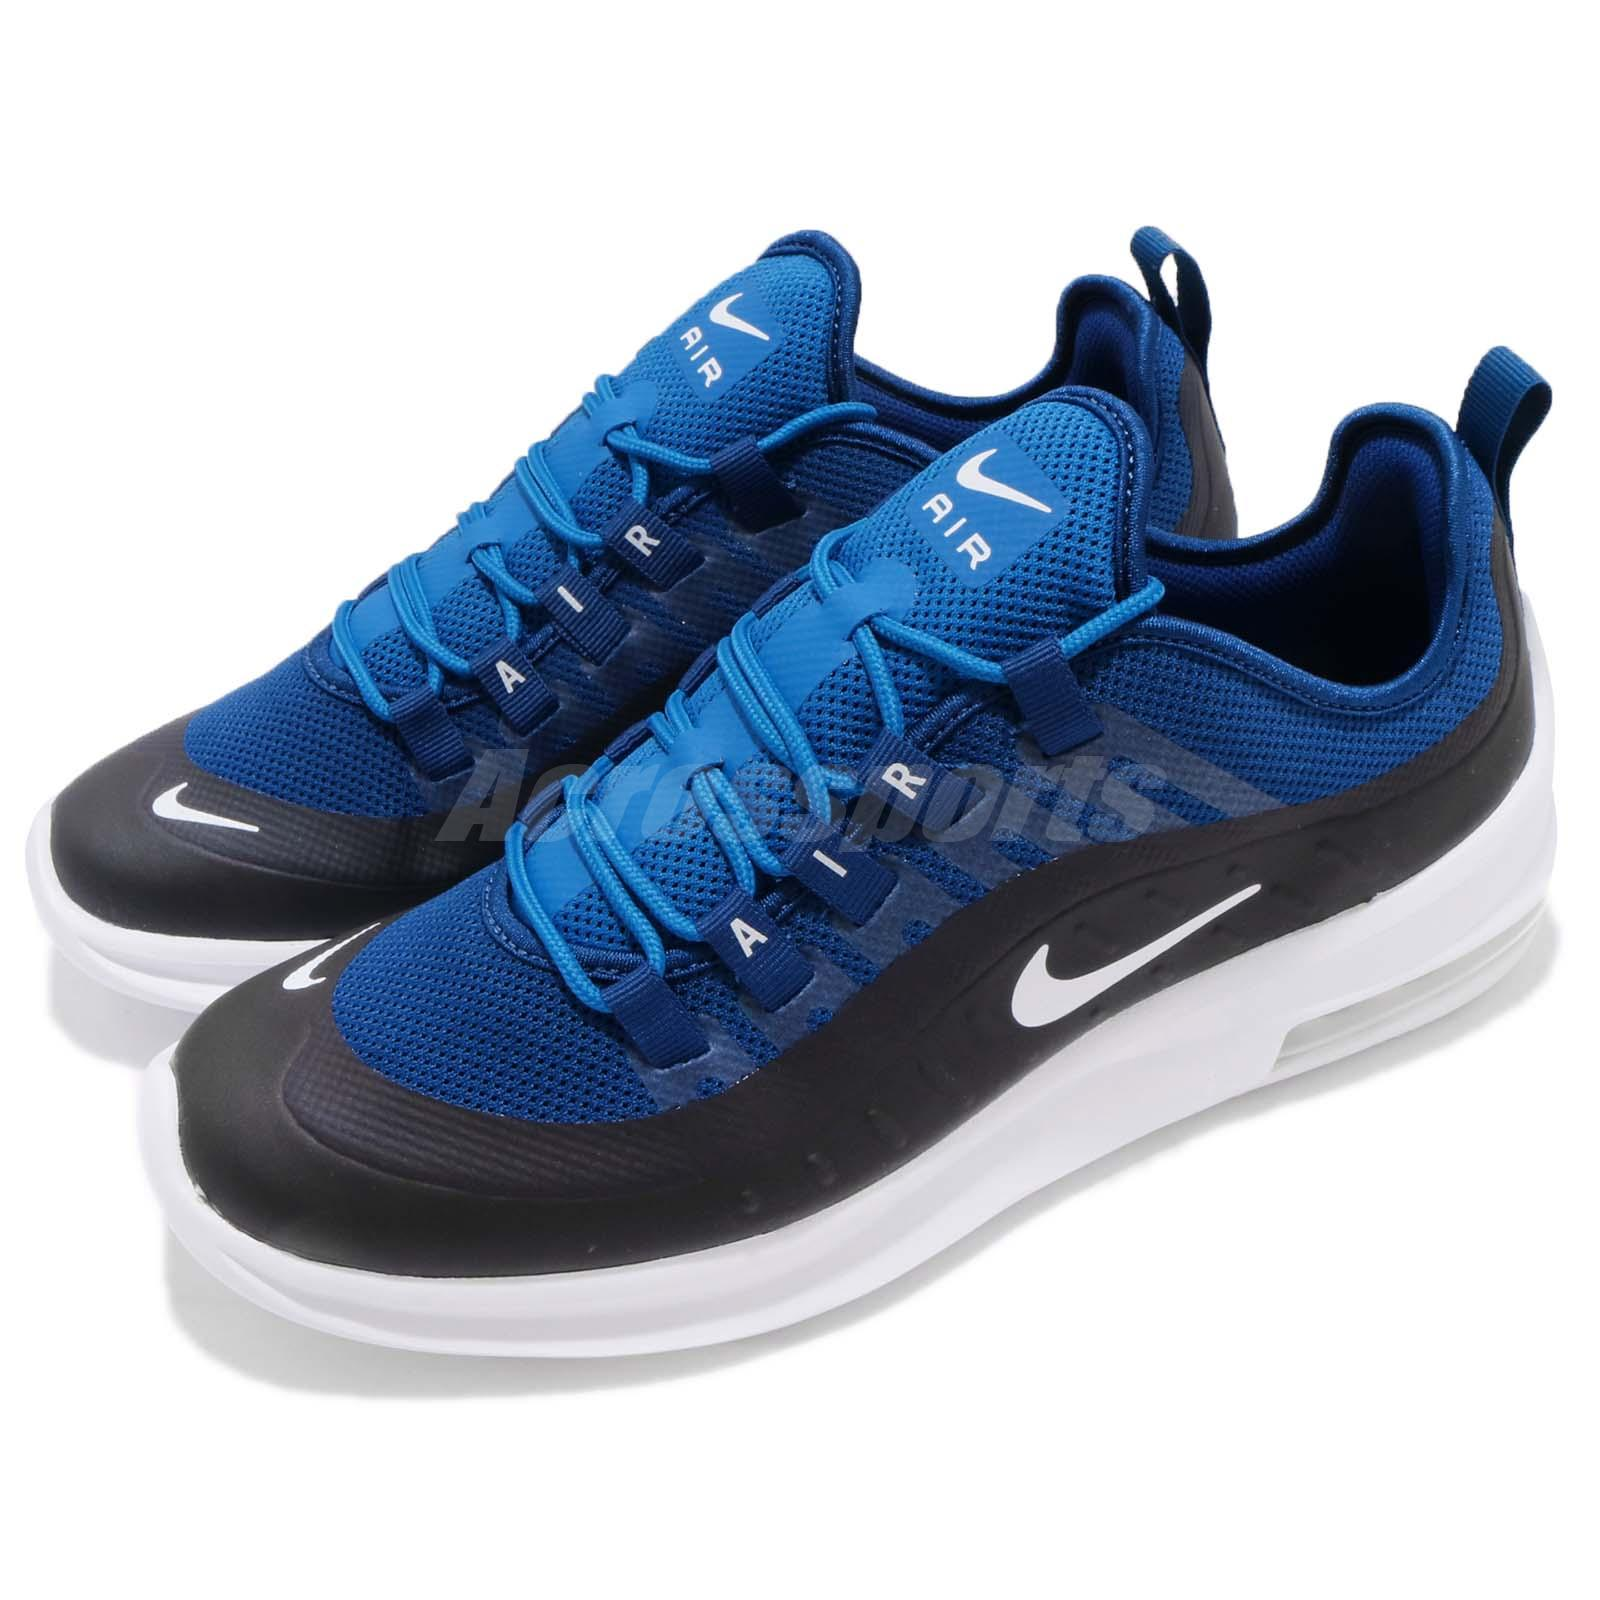 f6943ed3c9dfa Details about Nike Air Max Axis Black Blue White Men Running Casual Shoes  Sneakers AA2146-400